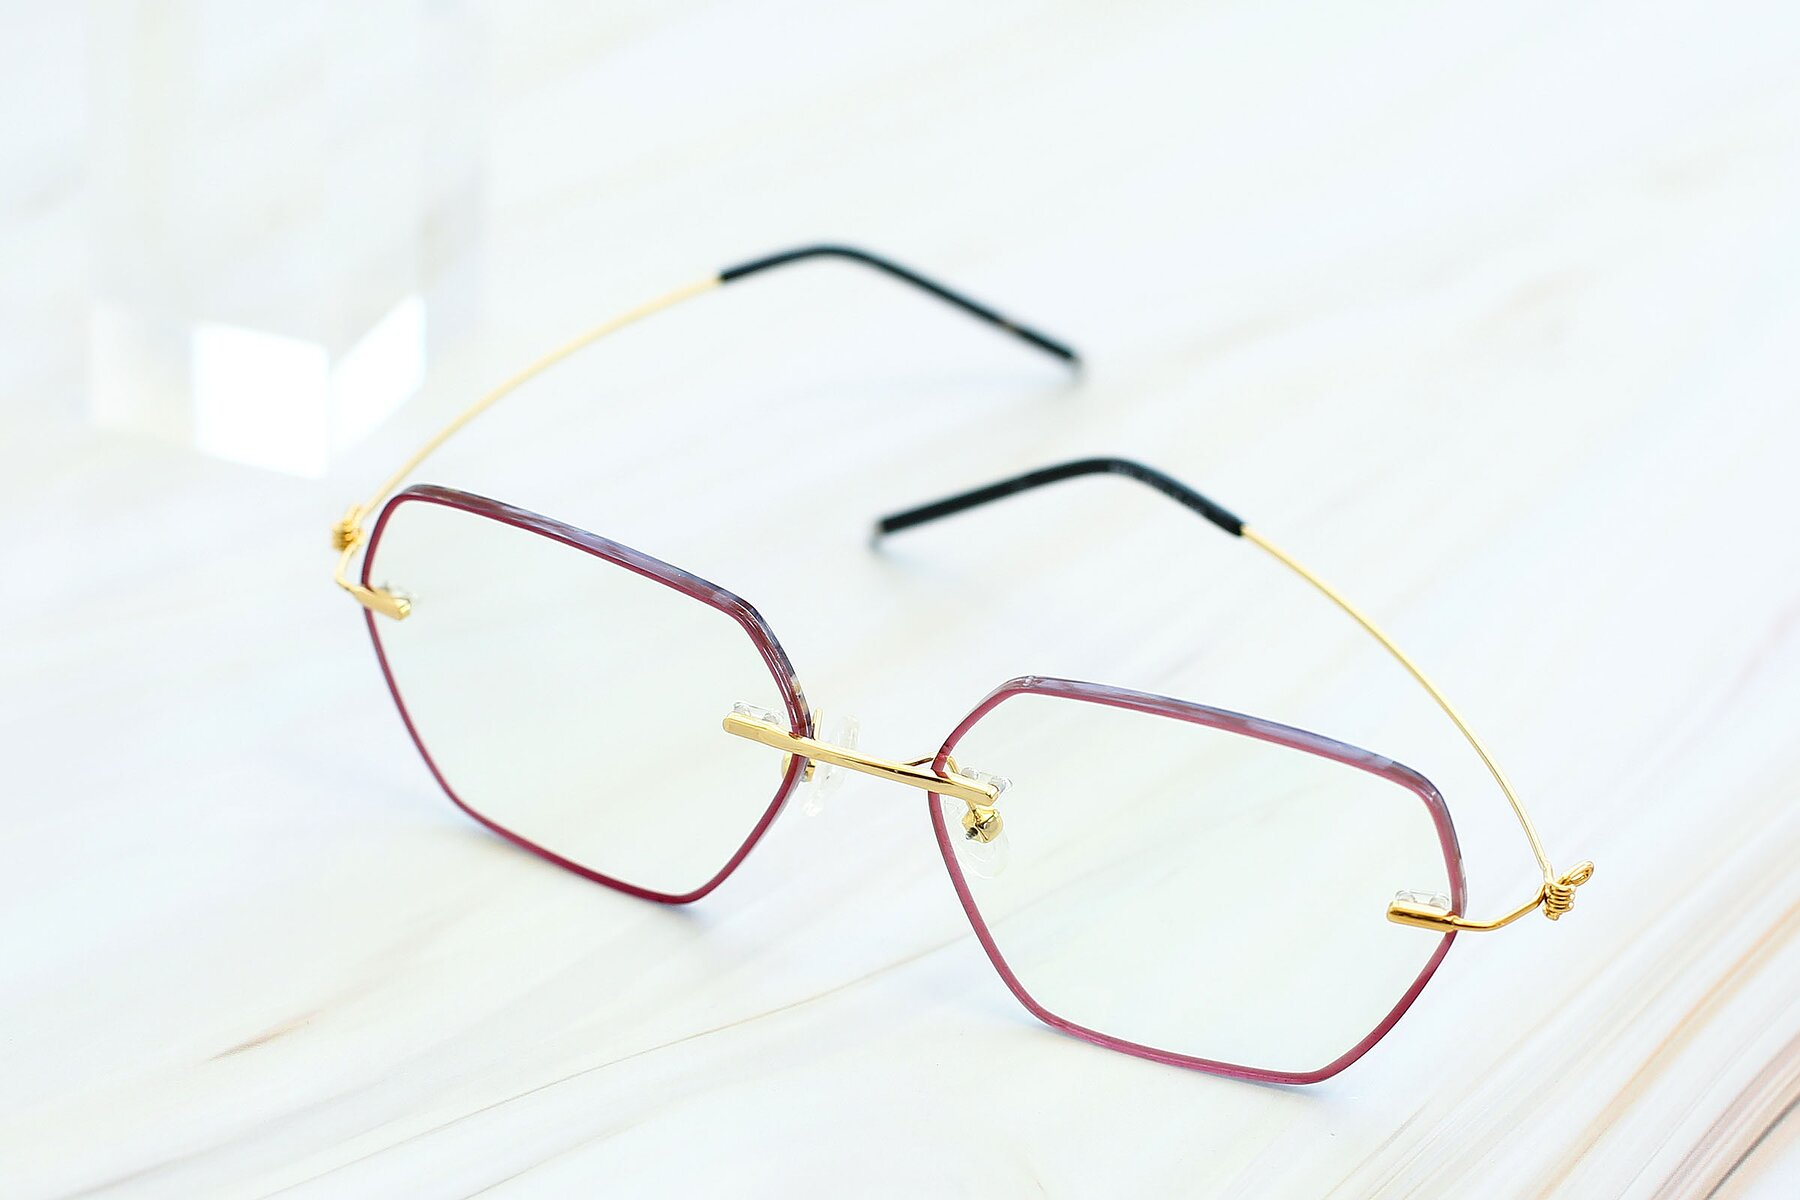 Women's lifestyle photography #2 of Y7006 in Red-Gold with Clear Blue Light Blocking Lenses